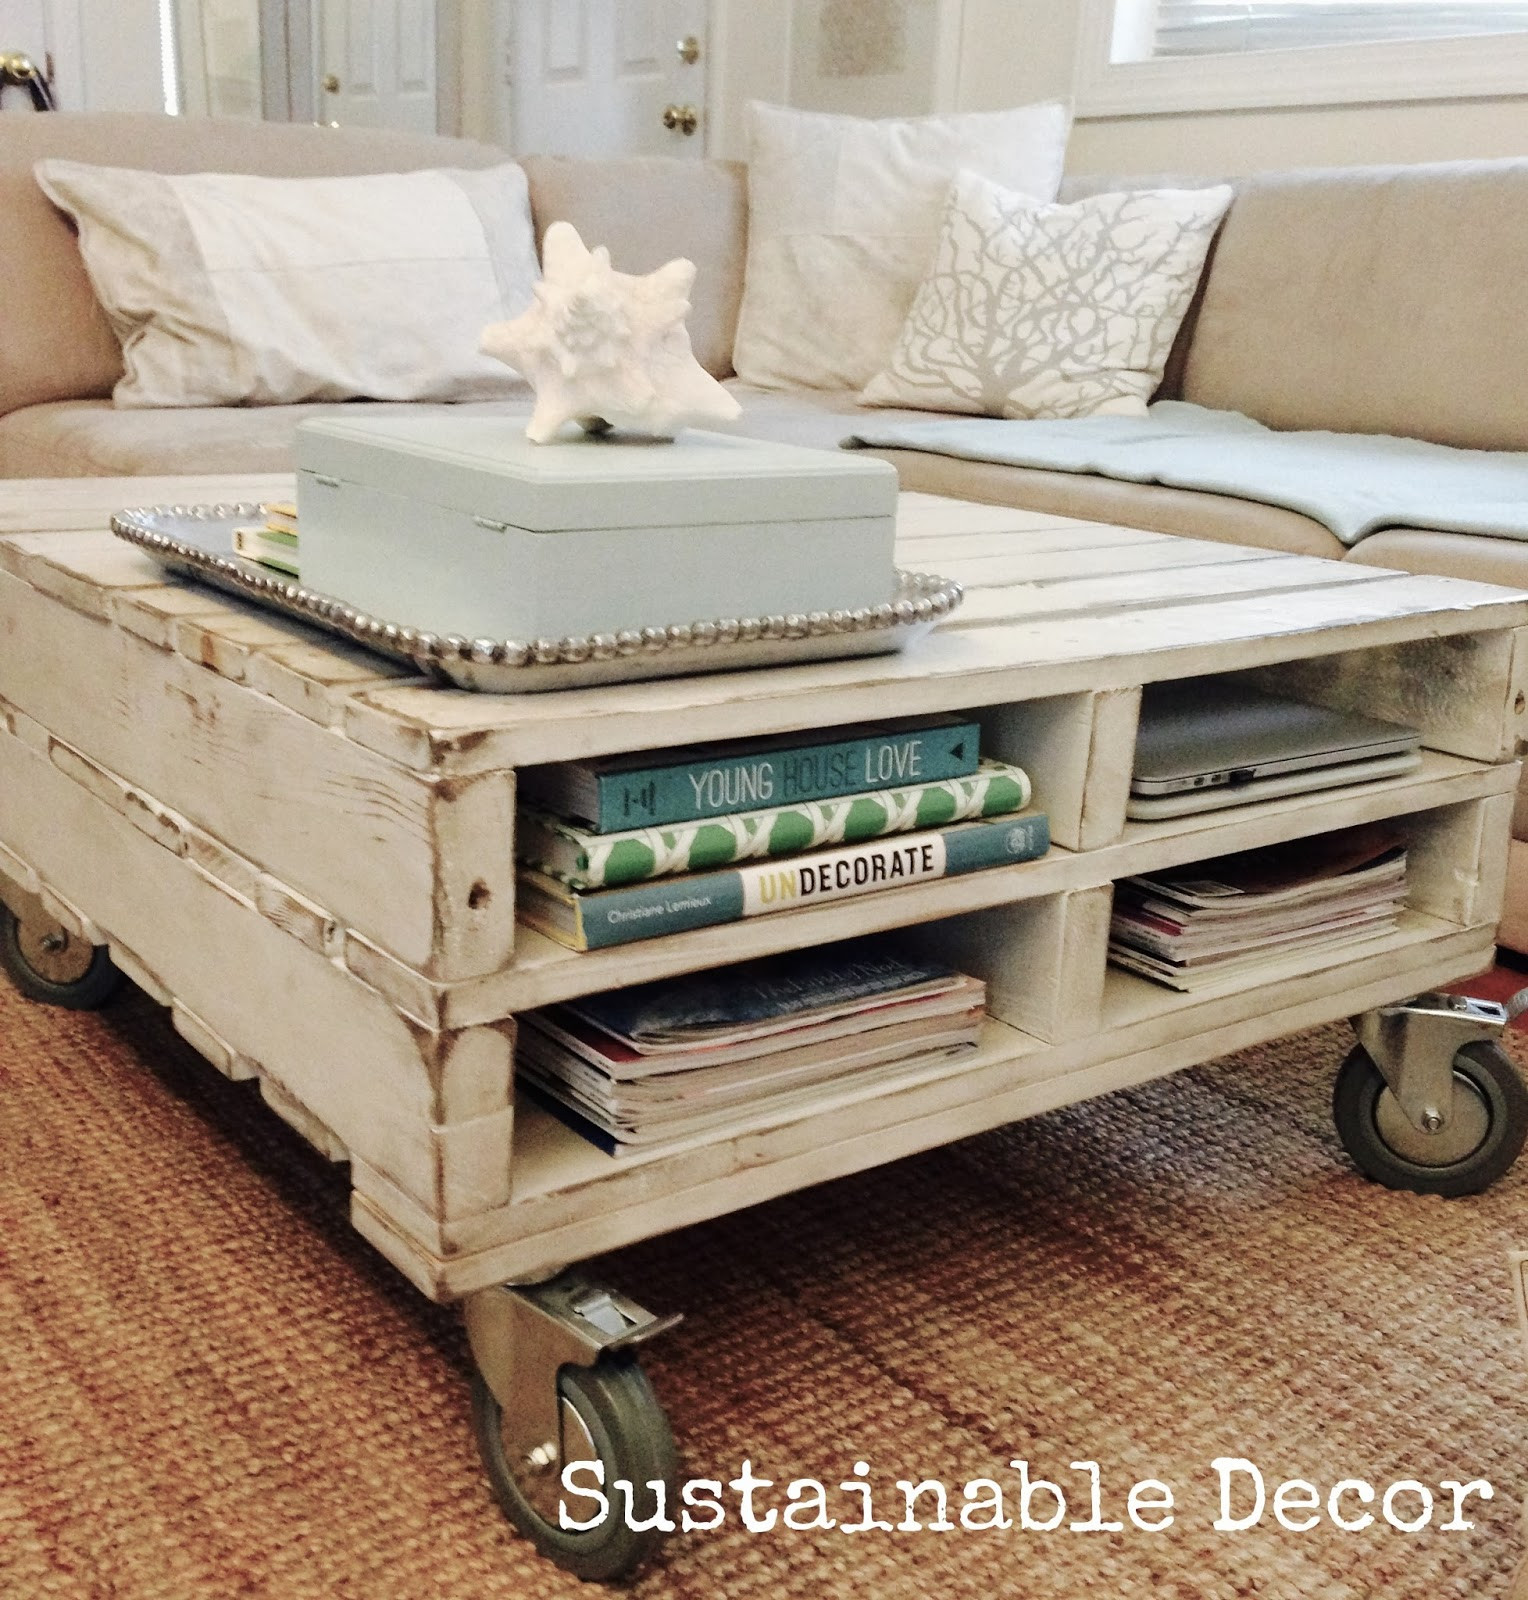 Best ideas about DIY Pallet Coffee Table . Save or Pin 20 Awesome DIY Pallet Projects Now.